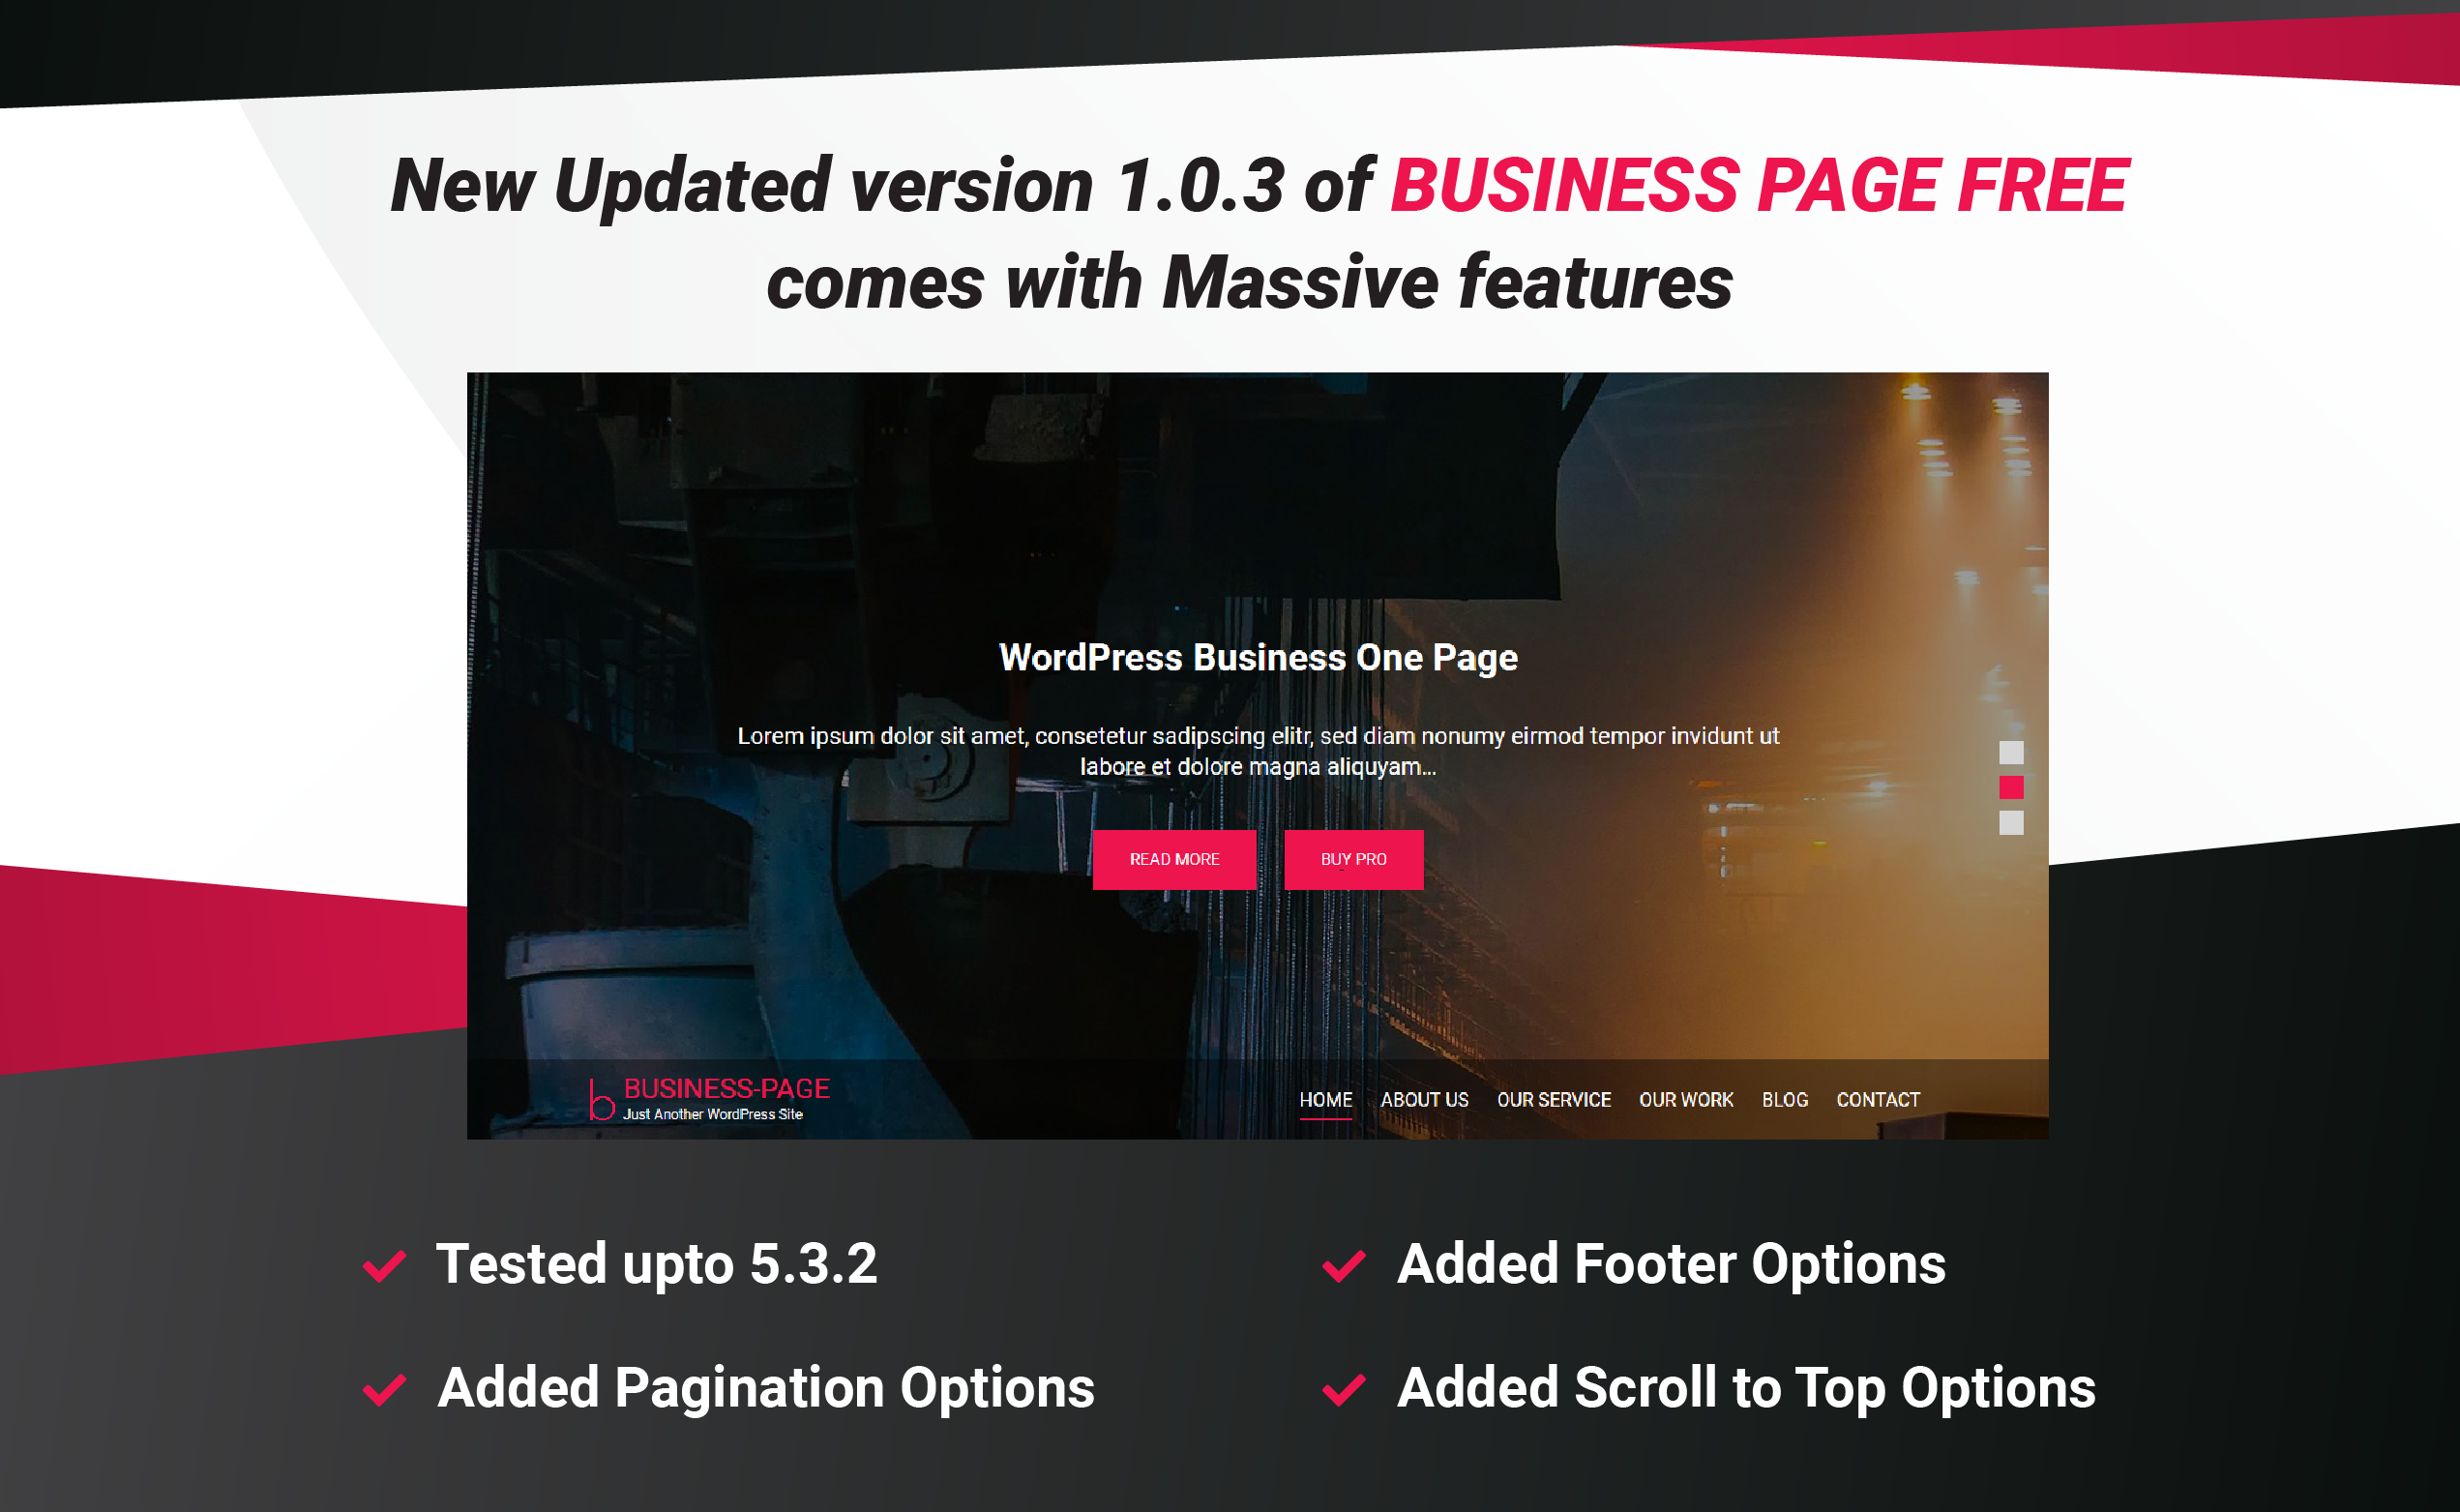 Business Page WP Free Theme 1.0.7 is just release